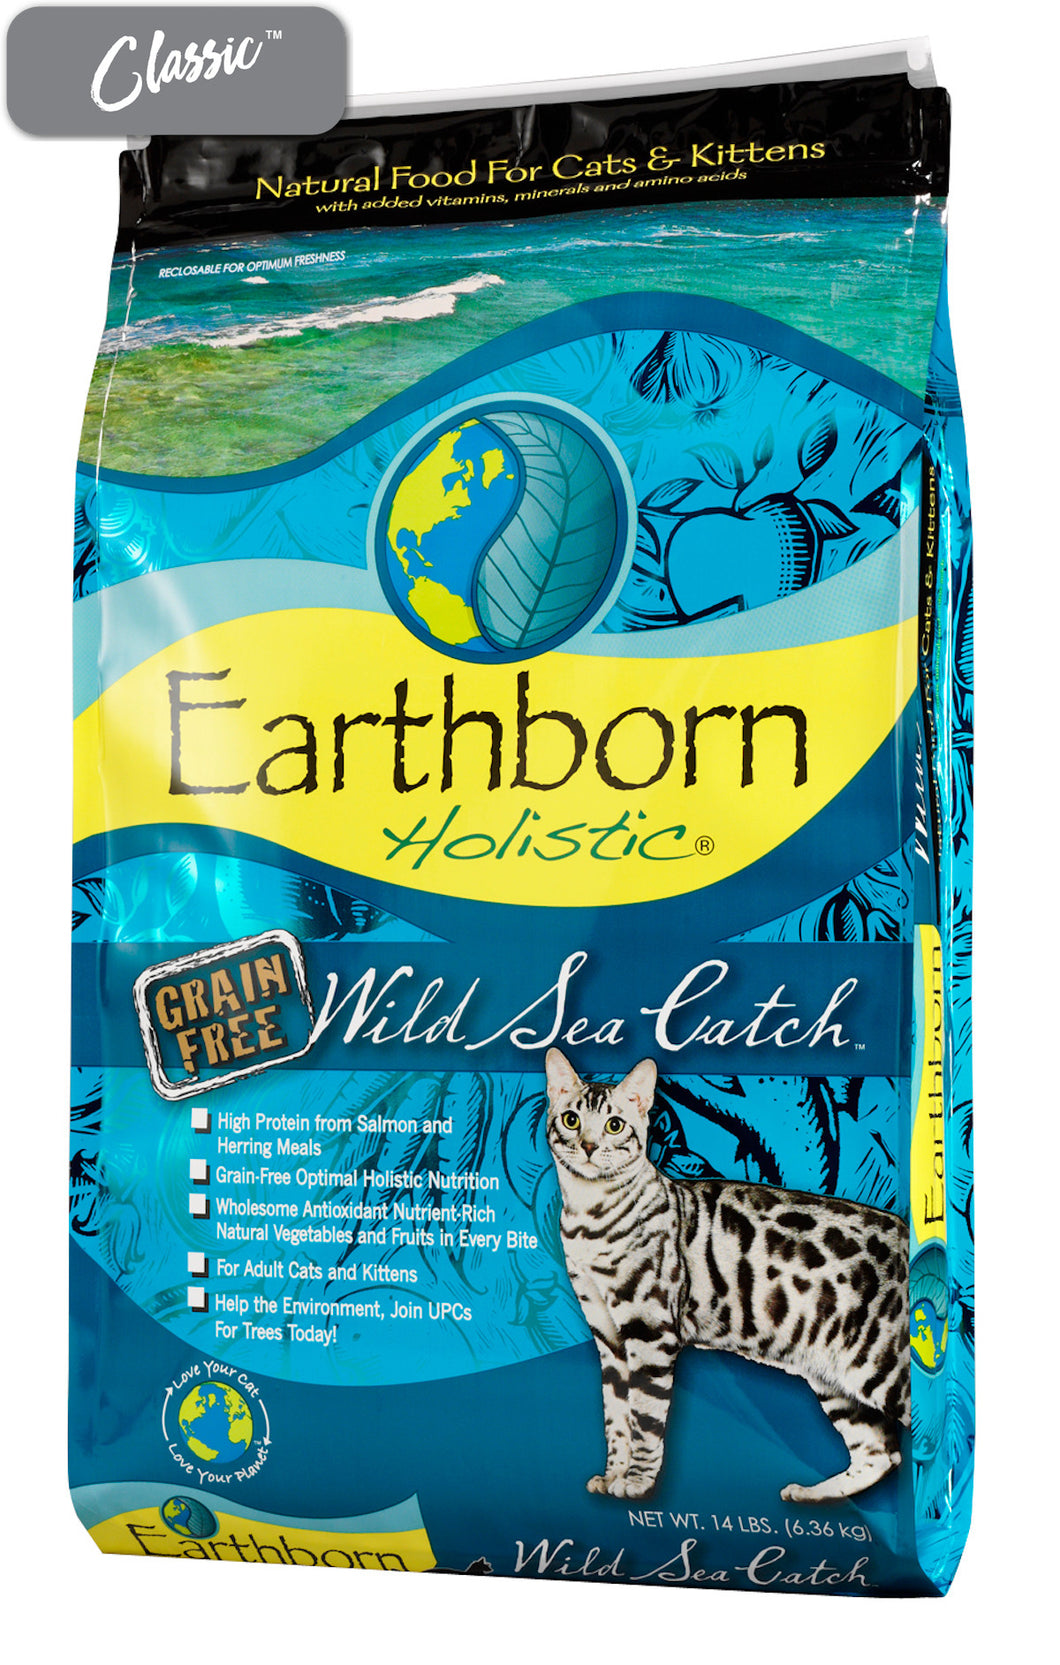 Earthborn Wild Sea Catch Salmon Cat Food